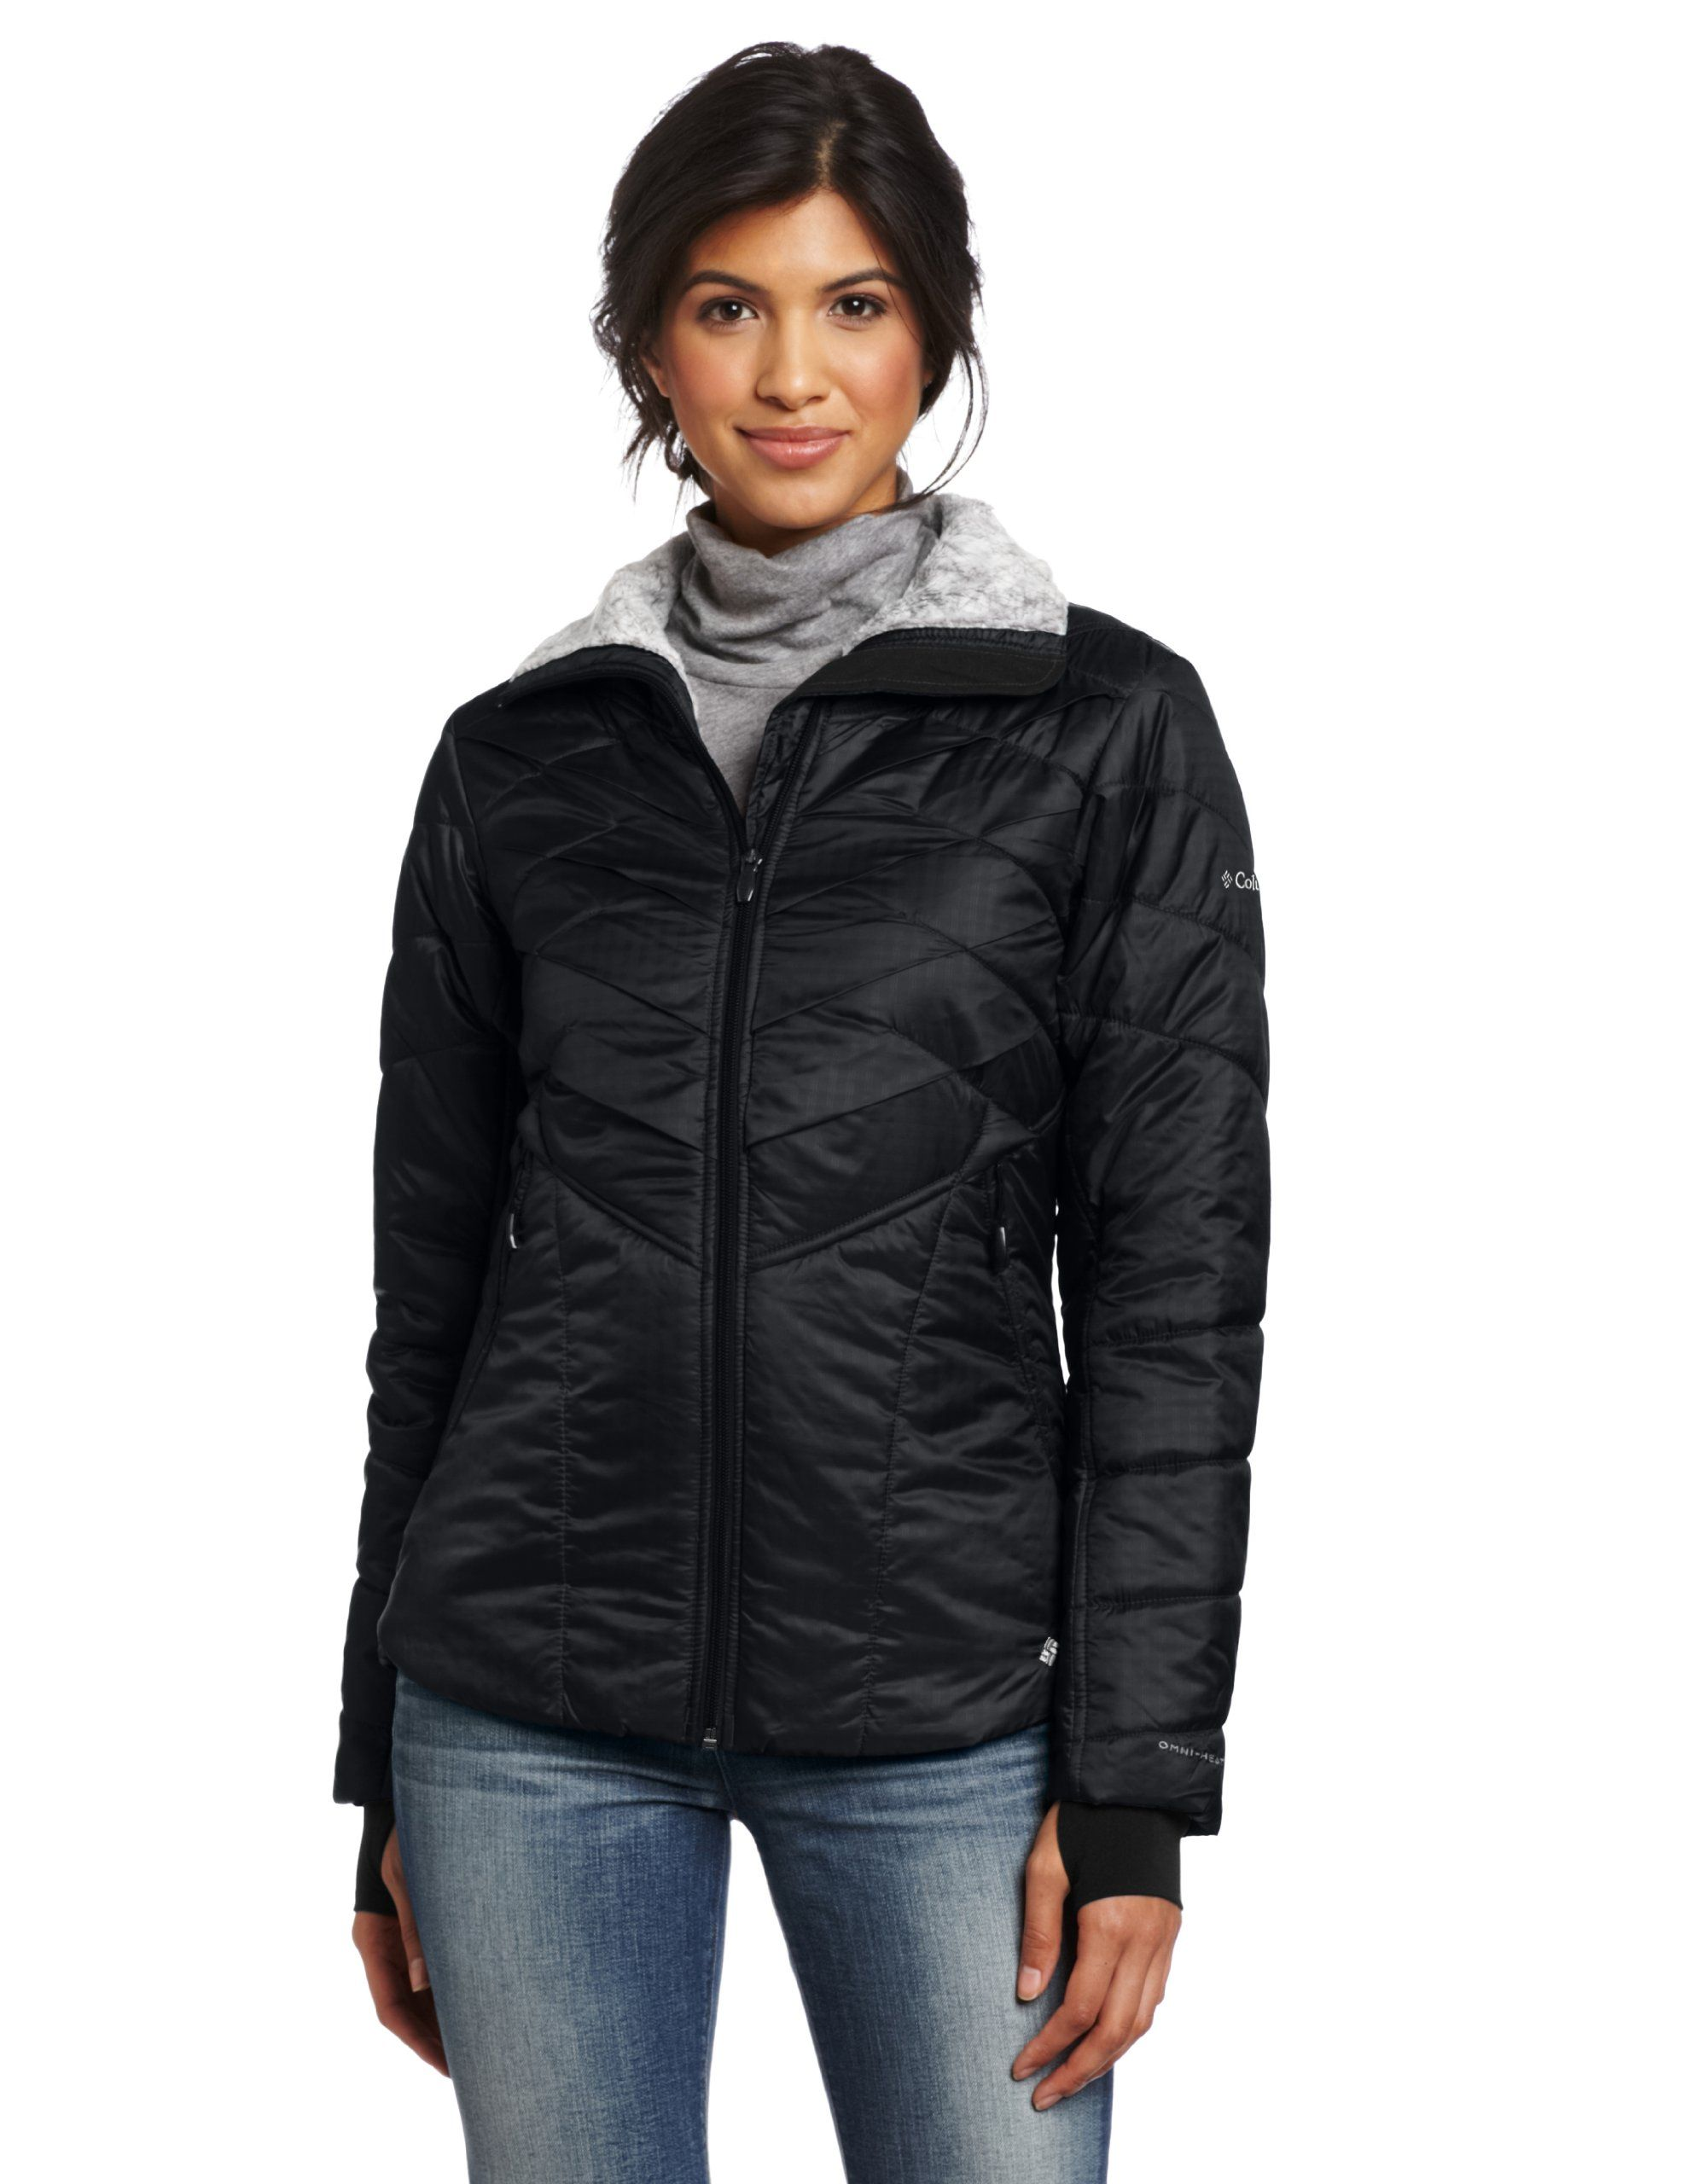 58063774d Columbia Women's Kaleidaslope II Jacket, Black, X-Large. Omni-Heat thermal  reflective and insulated. 80gsm 3-point Interchange System.